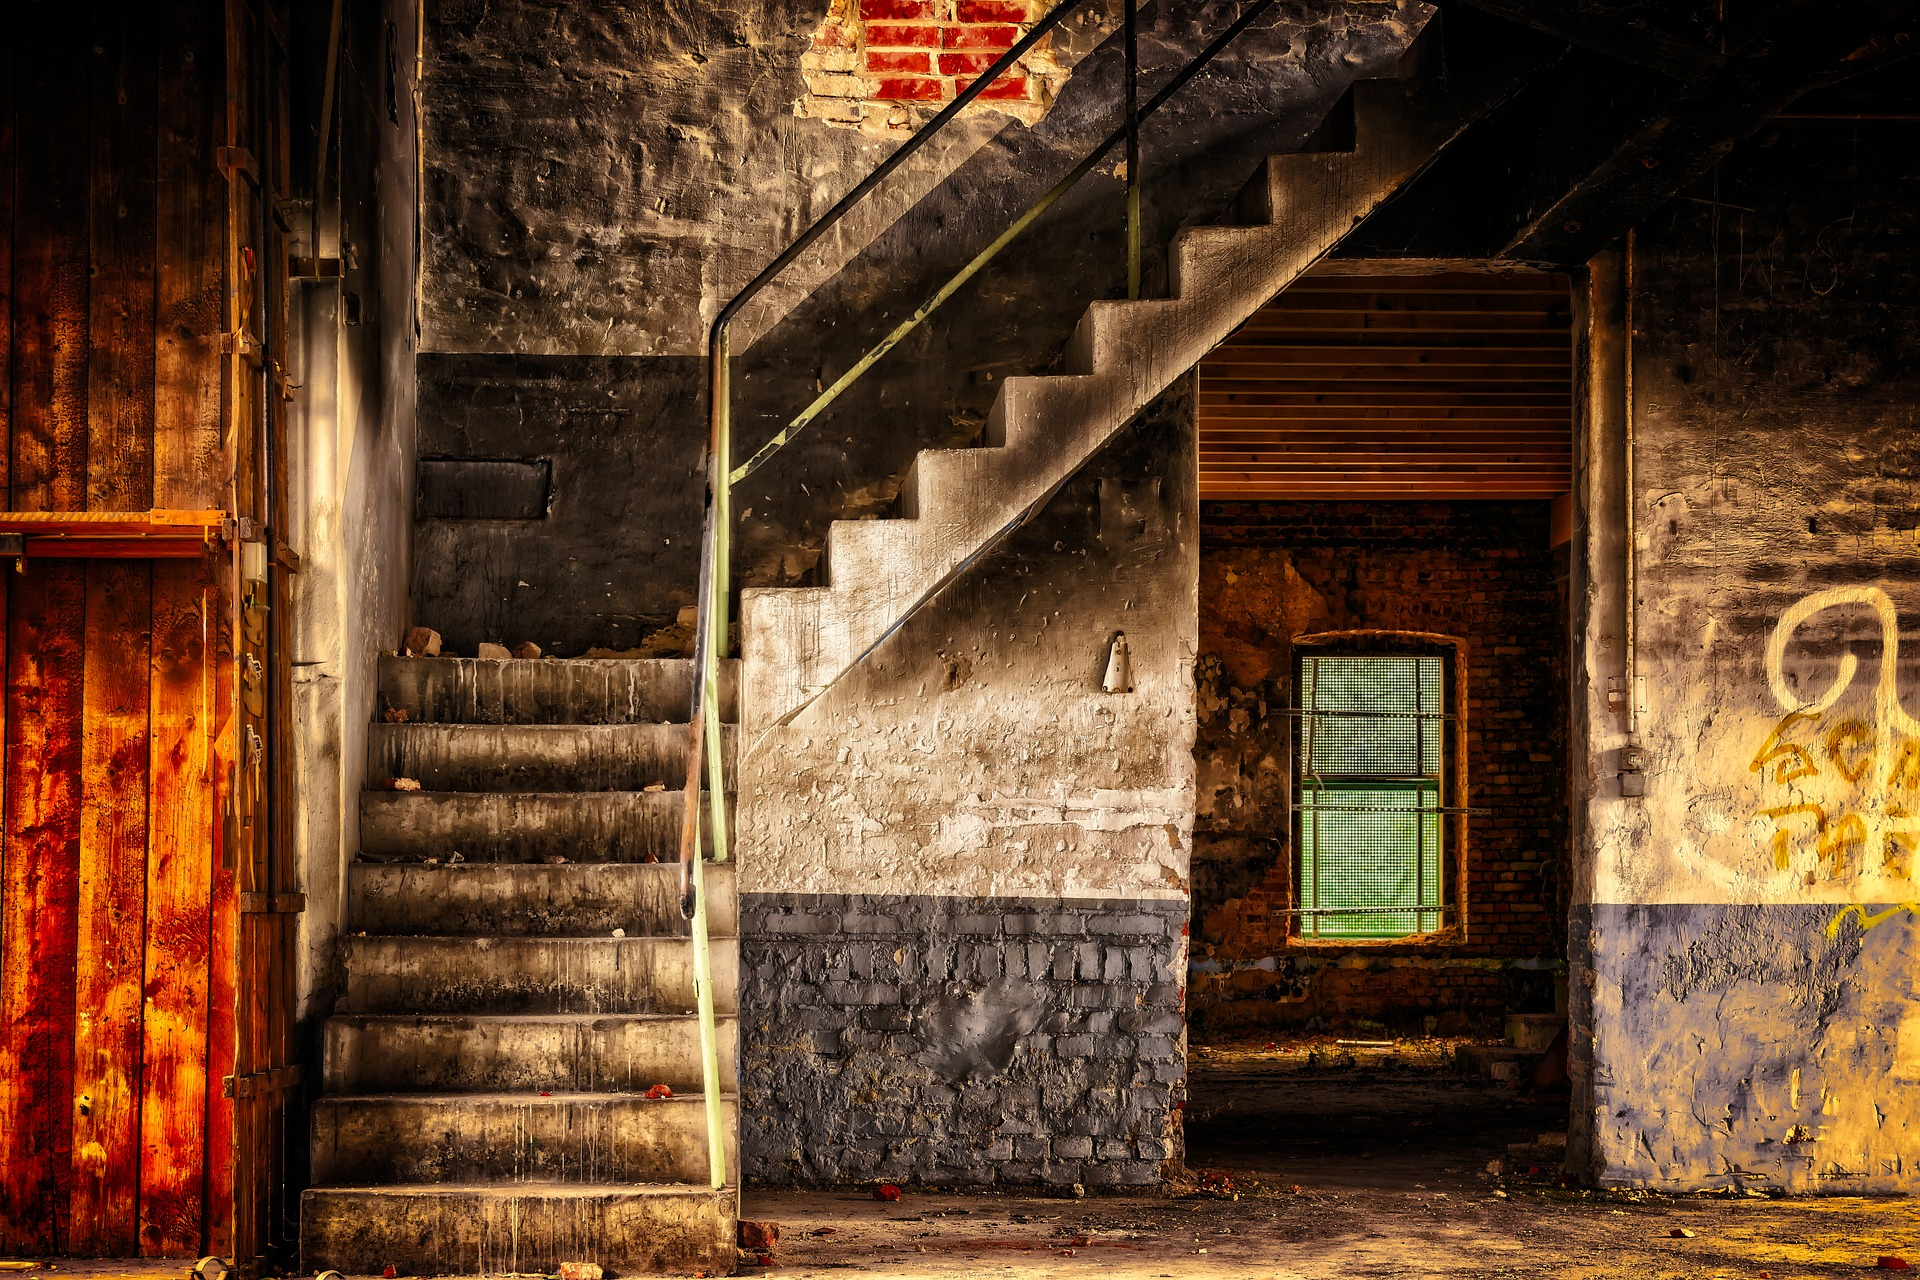 stairs-3314731_1920 Image by Peter H from Pixabay